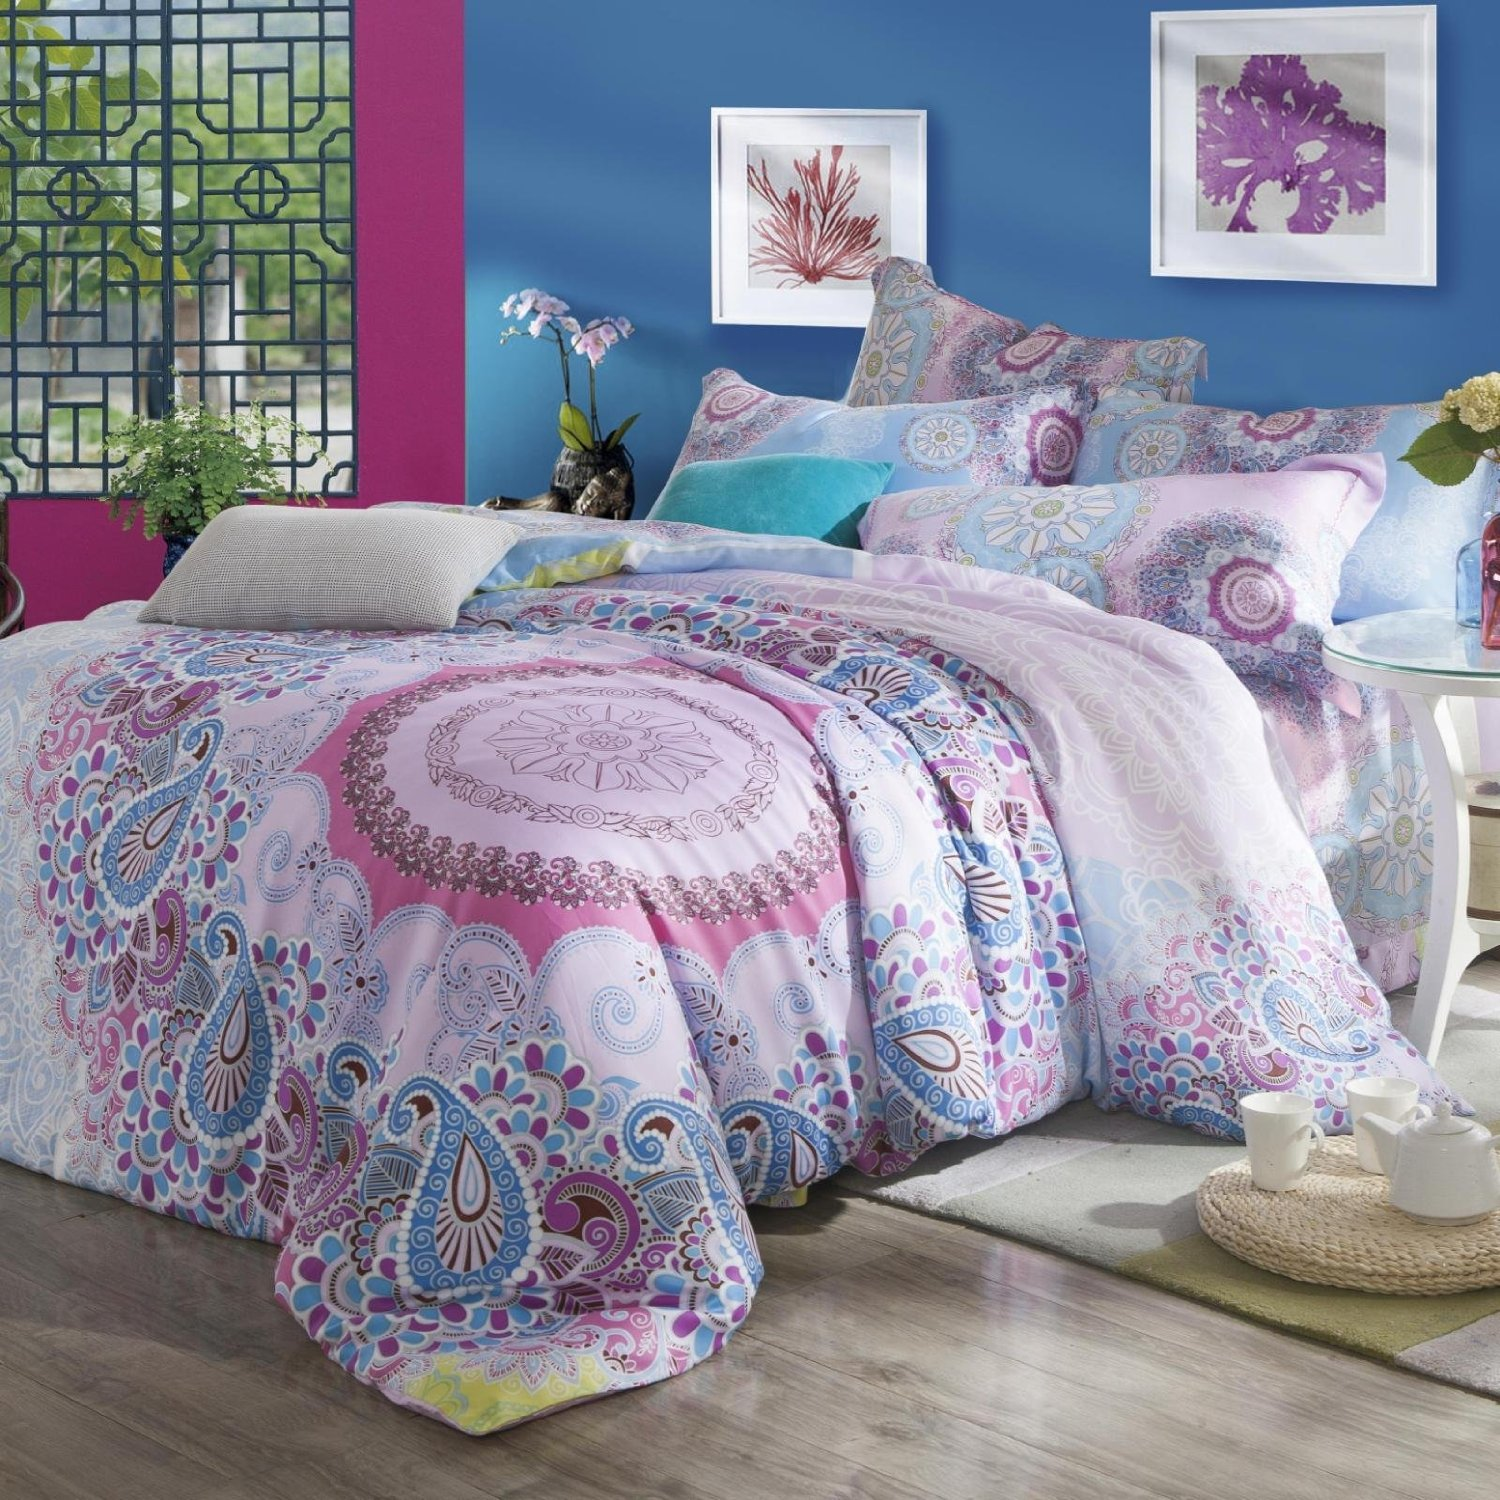 Astonishing Bohemian Comforter With Twin Full Queen Size Cotton Bohemian Comforter With Modern Bedding Sets